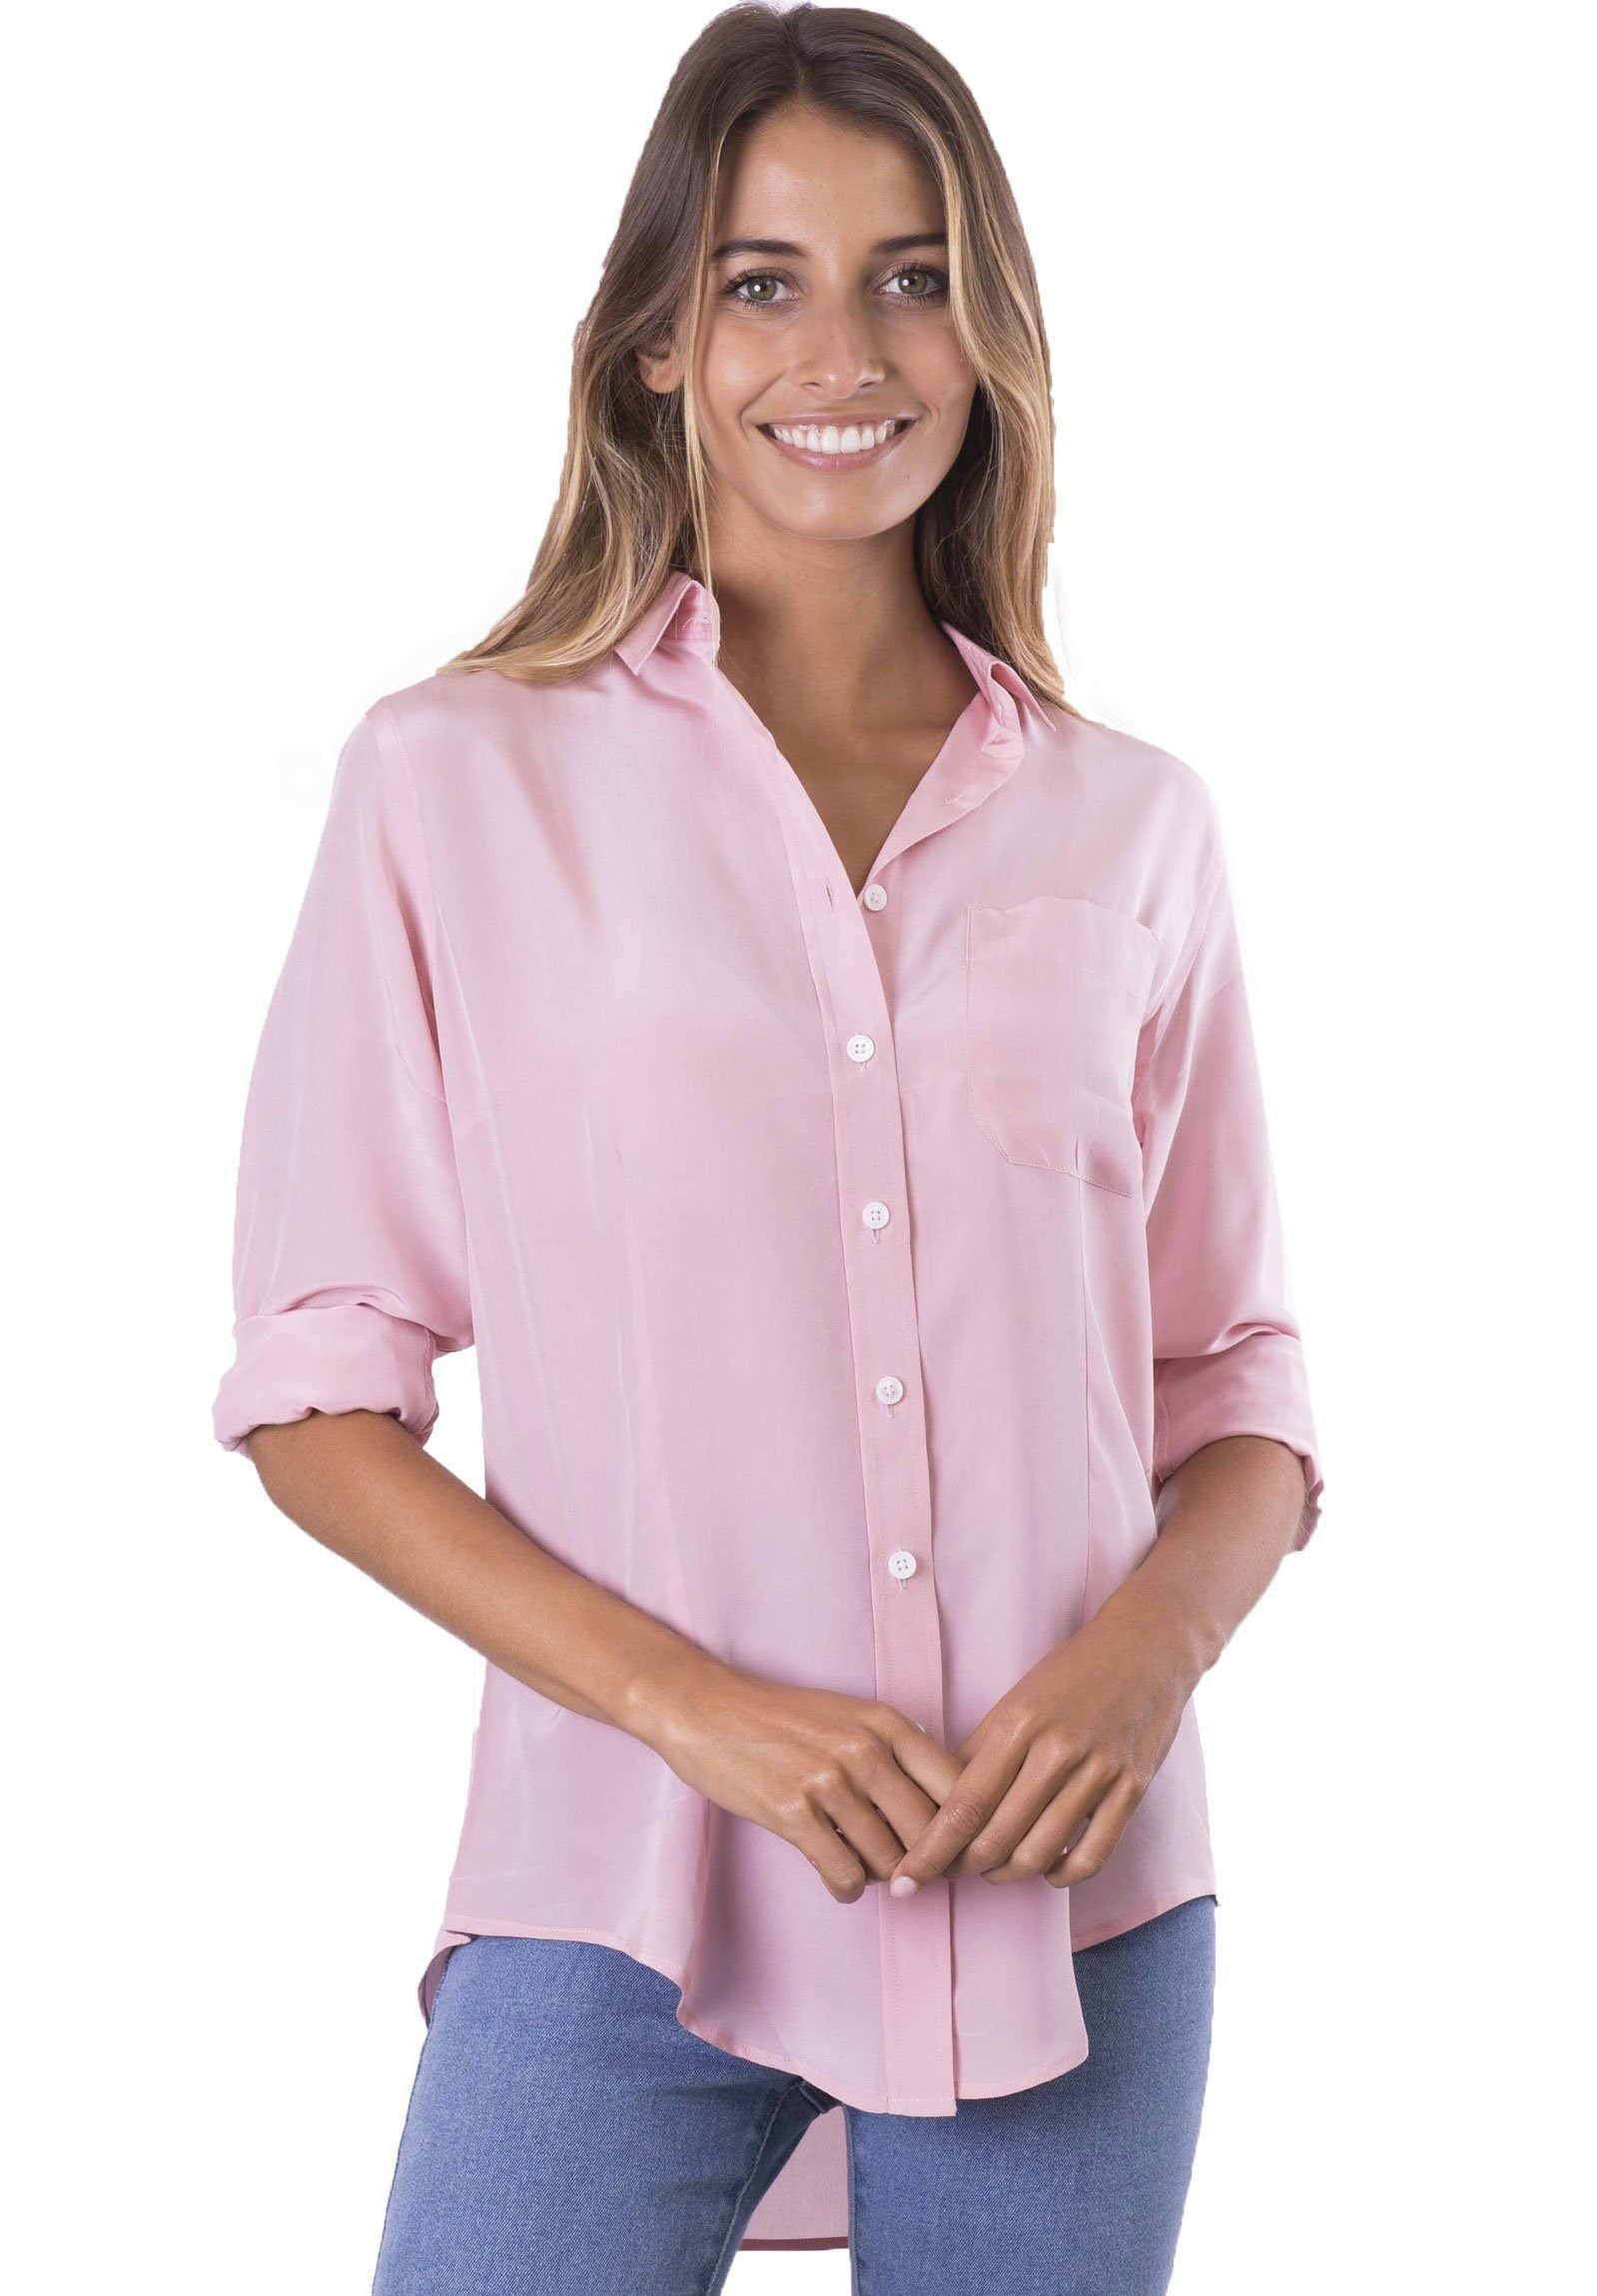 Seta Antique Pink, Pure Crepe de Chine Silk, Slim-Fit Shirt